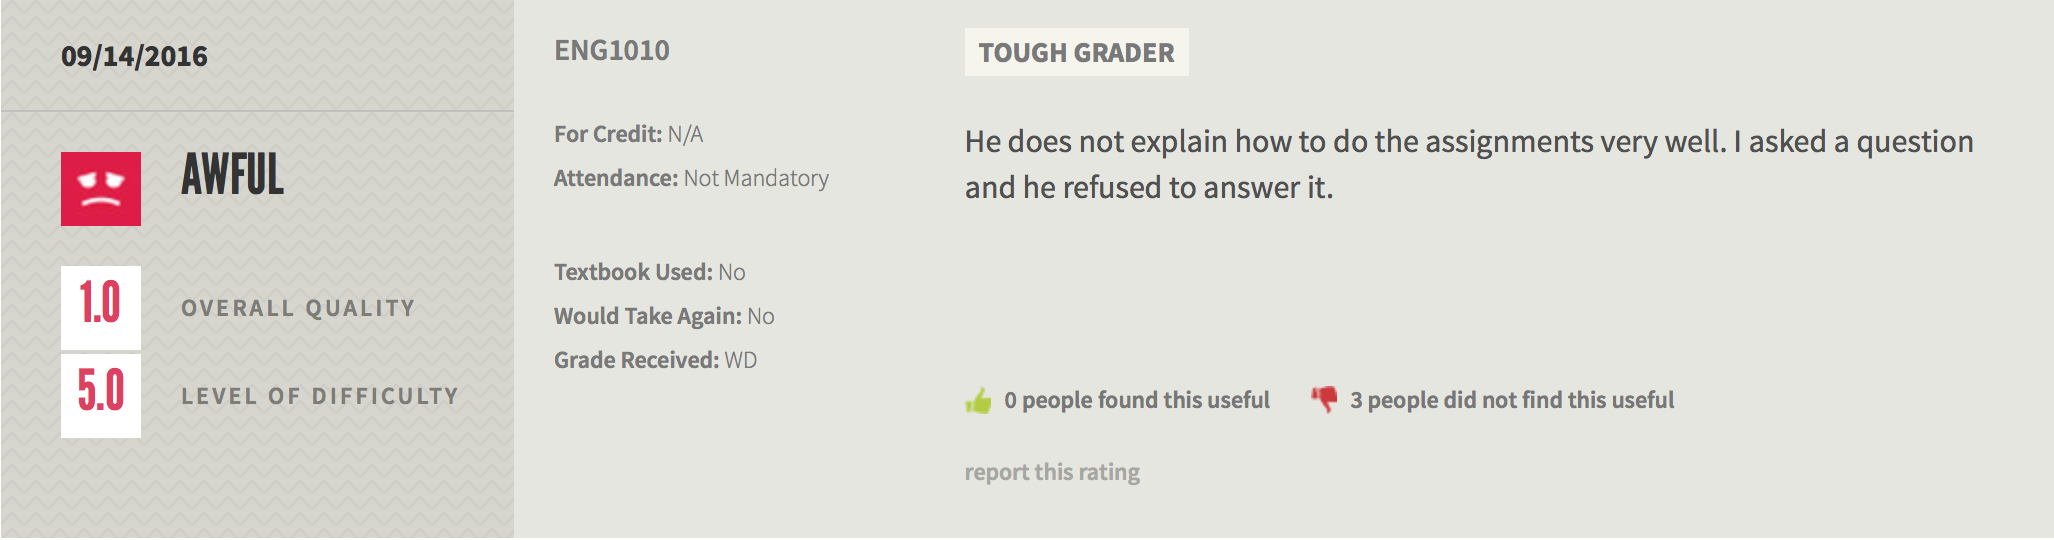 An RMP review of Justin's English 1010 course in which the student says he does not explain assignments or refused to answer questions.